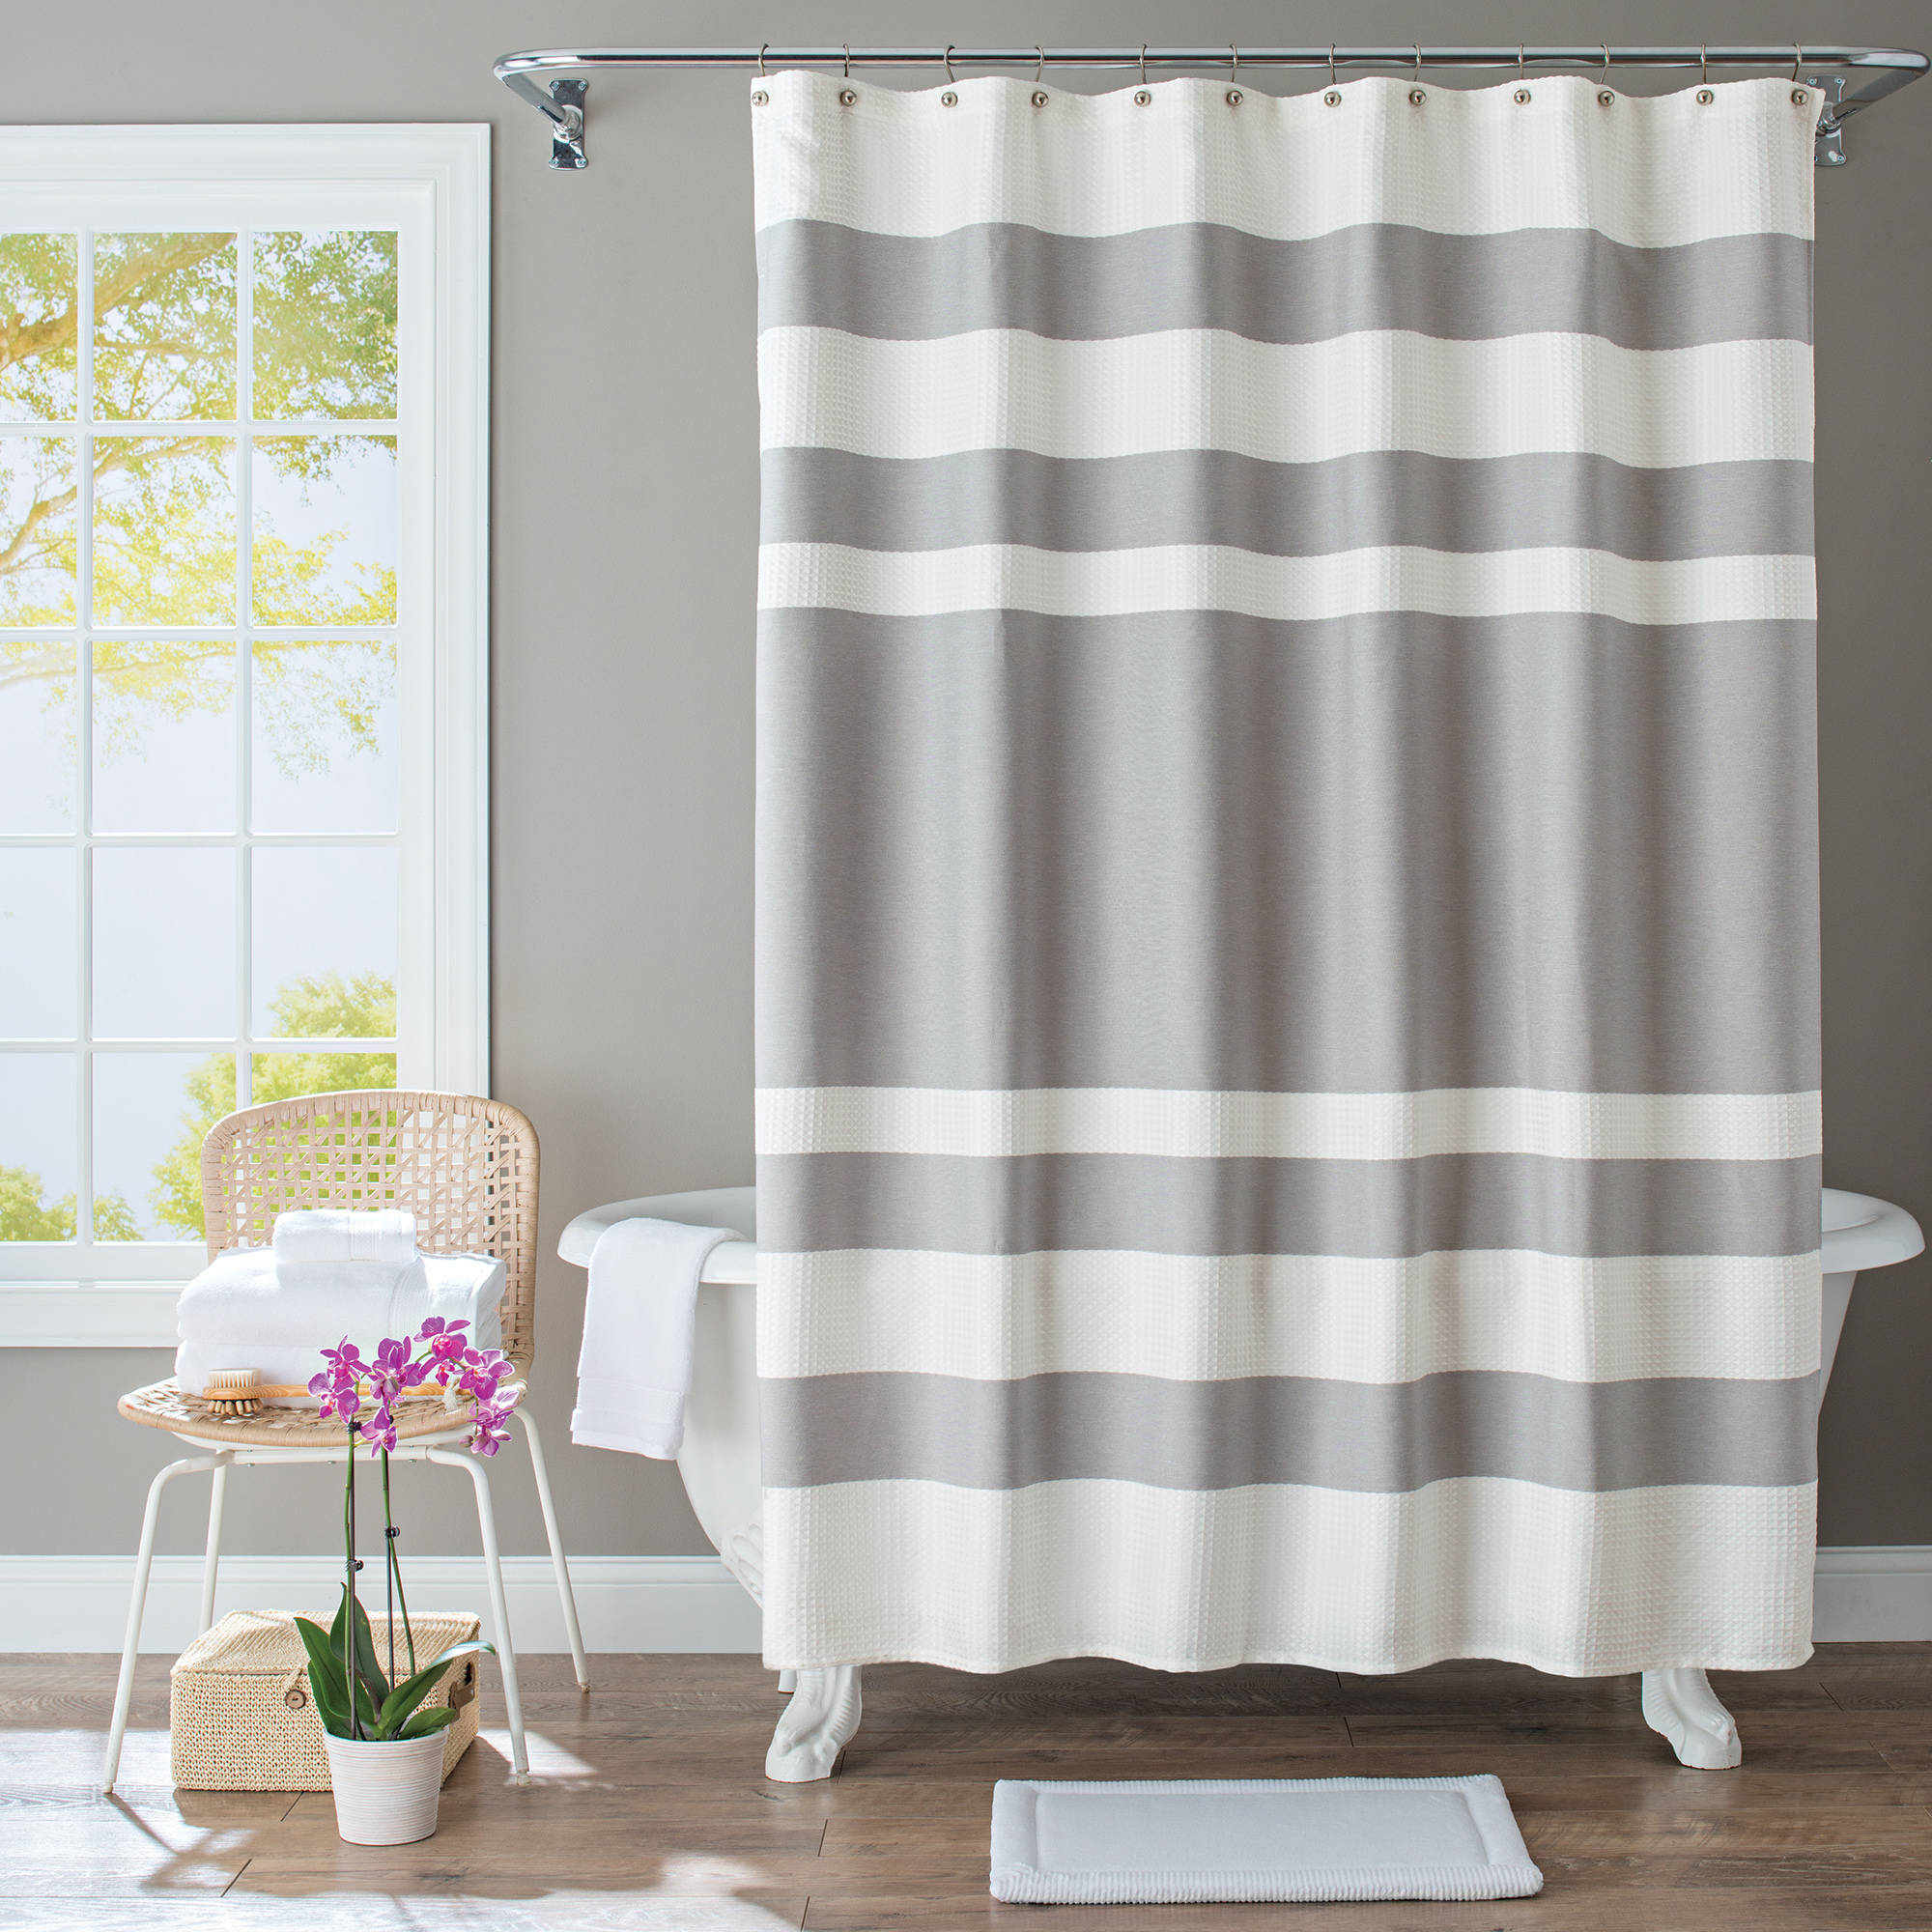 Curtains Olive Green Shower Curtain Brown And Teal Shower for proportions 2000 X 2000